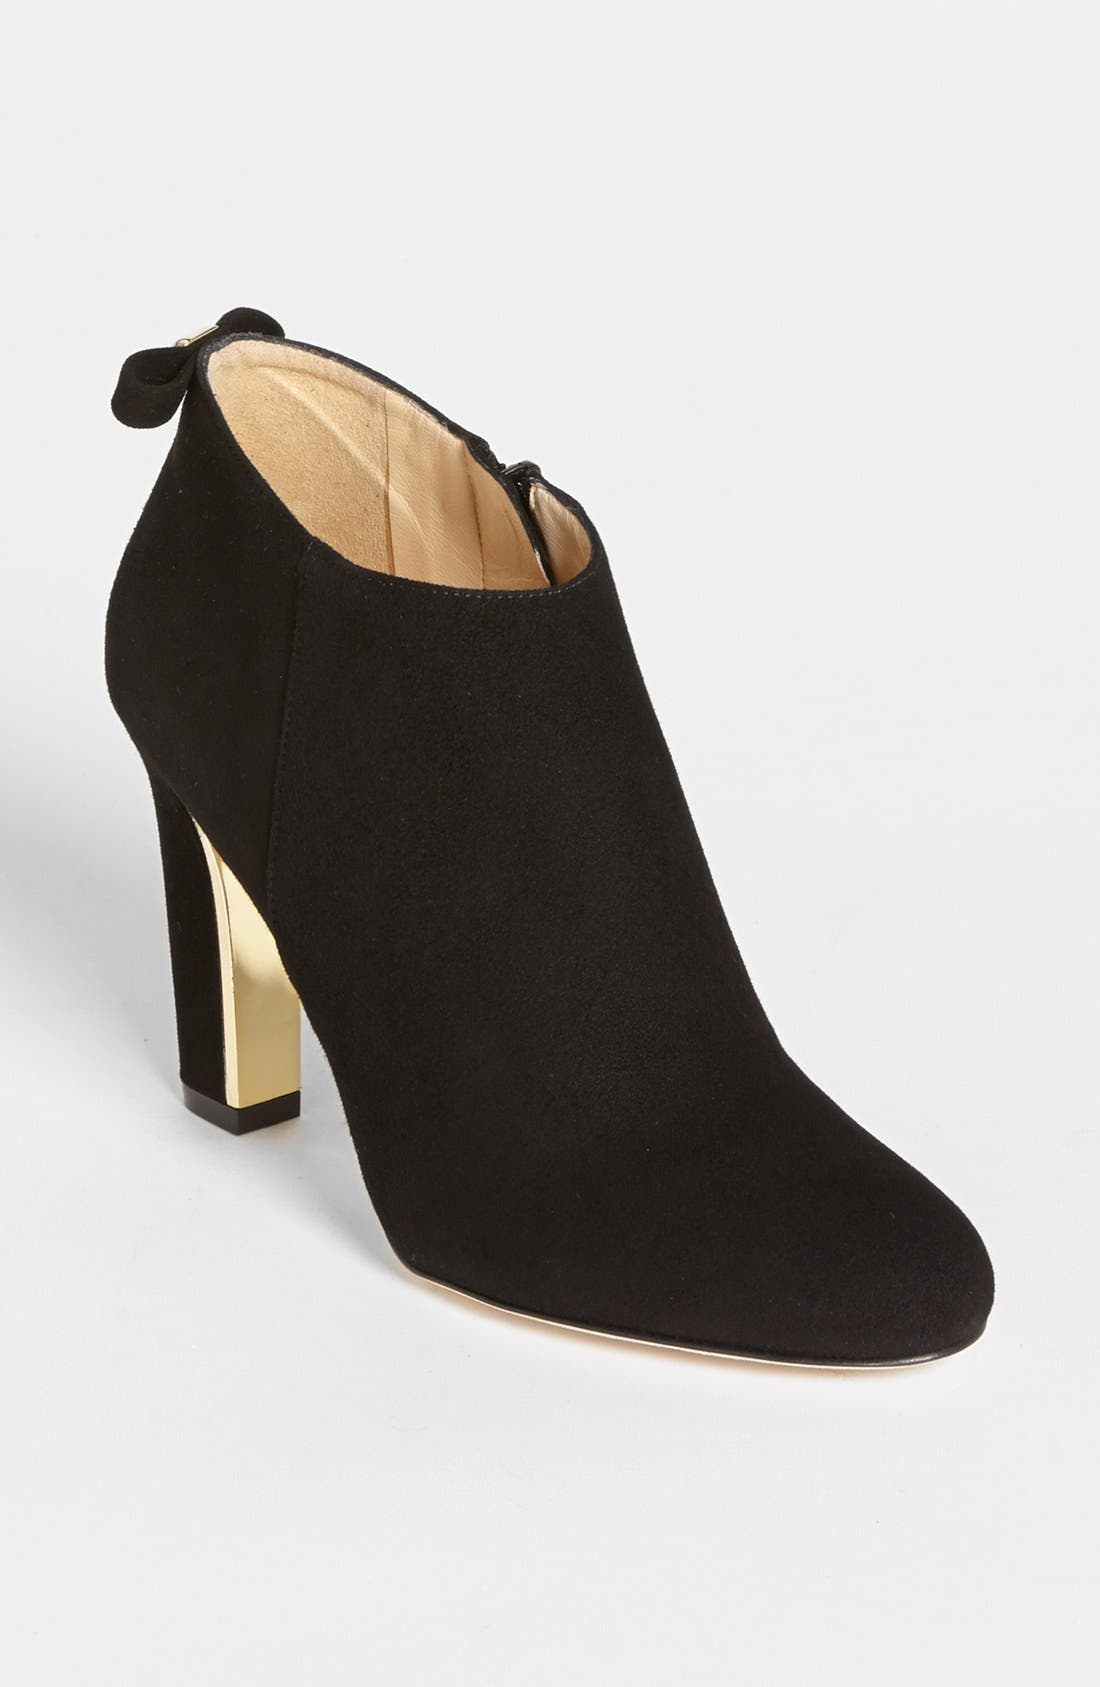 Alternate Image 1 Selected - kate spade new york 'netta' bootie